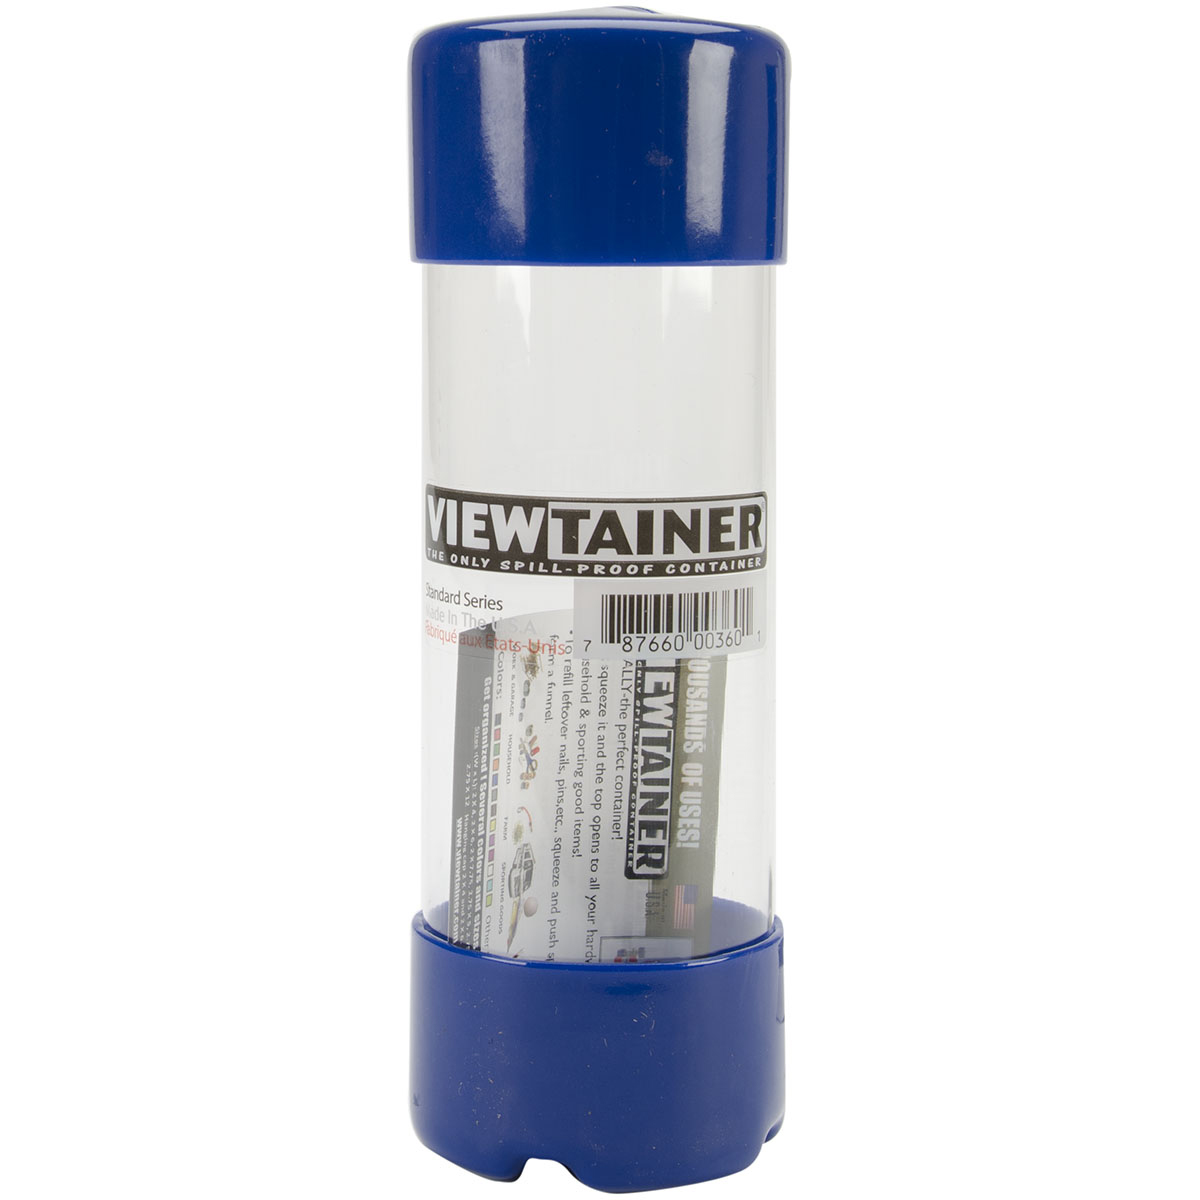 Viewtainer 2X6- Blue